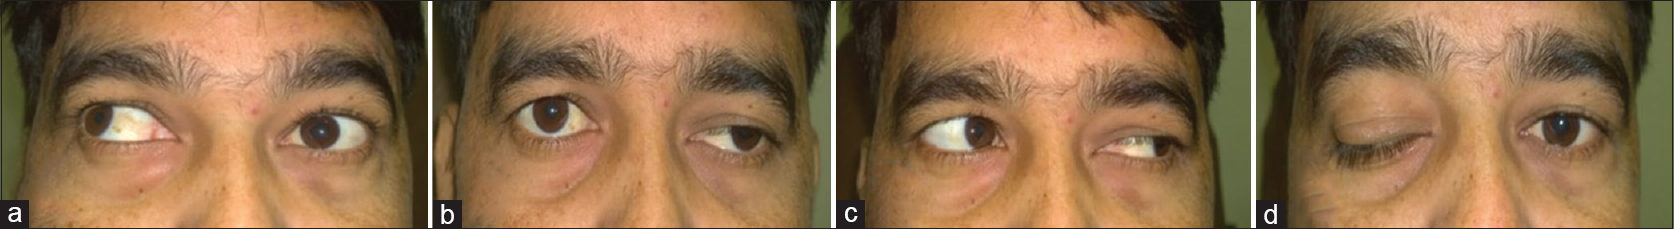 Figure 1: Clinical photograph showing aberrant regeneration 6 months after trauma. (a) Inverse Duane sign: Elevation of the left eyelid with ipsilateral adduction, (b) primary gaze picture showing moderate ptosis in the left eye, (c) left gaze, (d) Pseudo-Von Graefe sign: Elevation of ptotic left eyelid on attempted downgaze